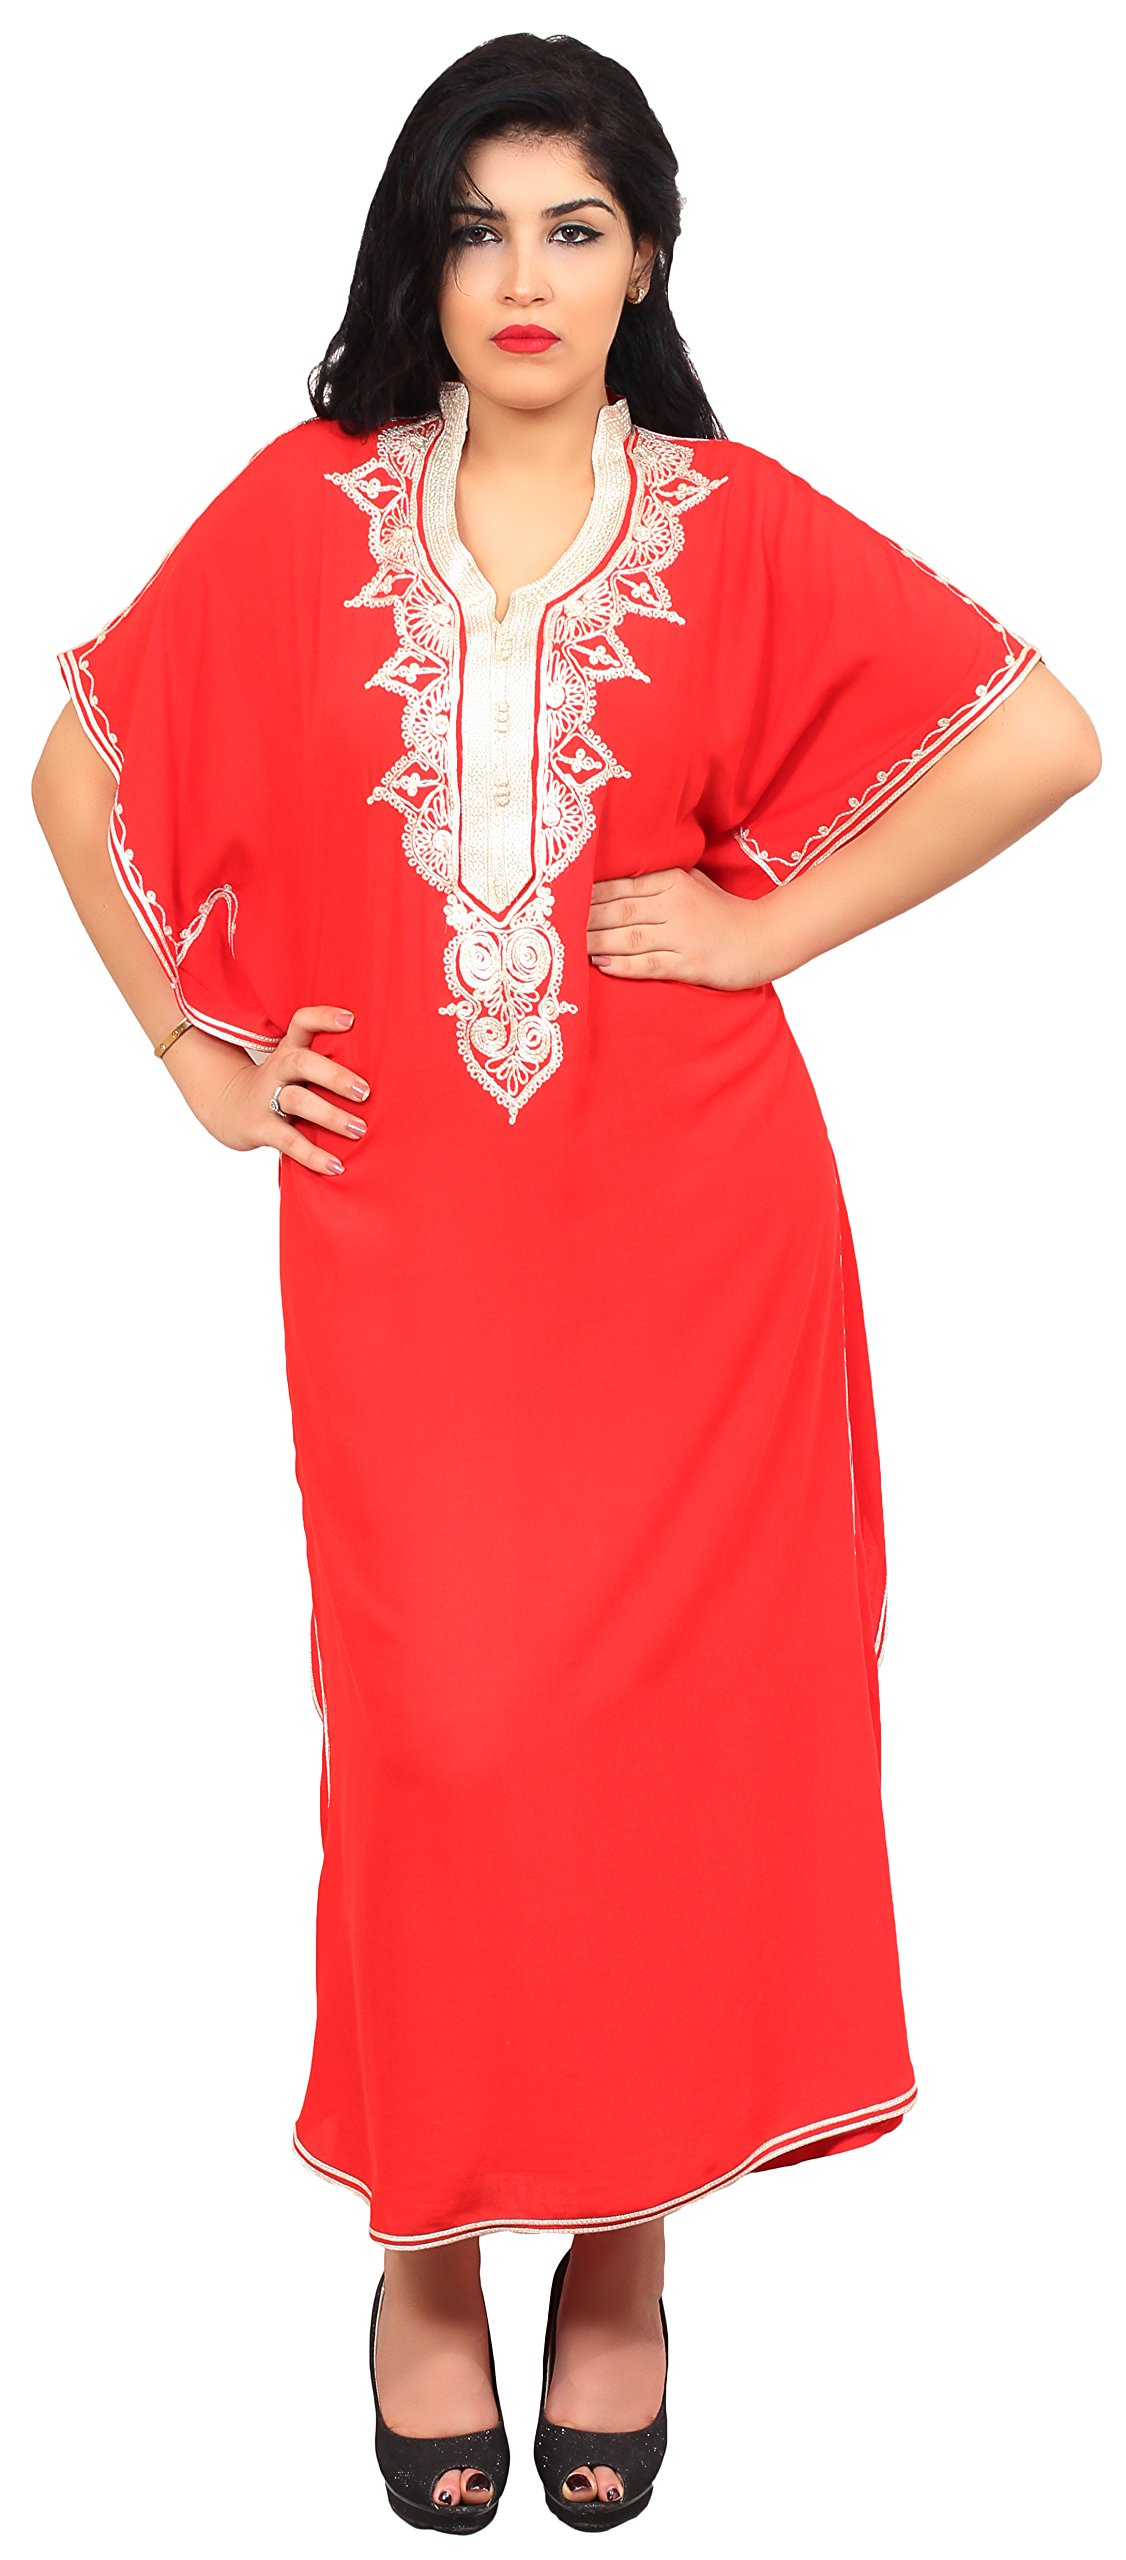 Moroccan Caftan Hand Made Top Quality Breathable Cotton with Hand Embroidery Long Length Red